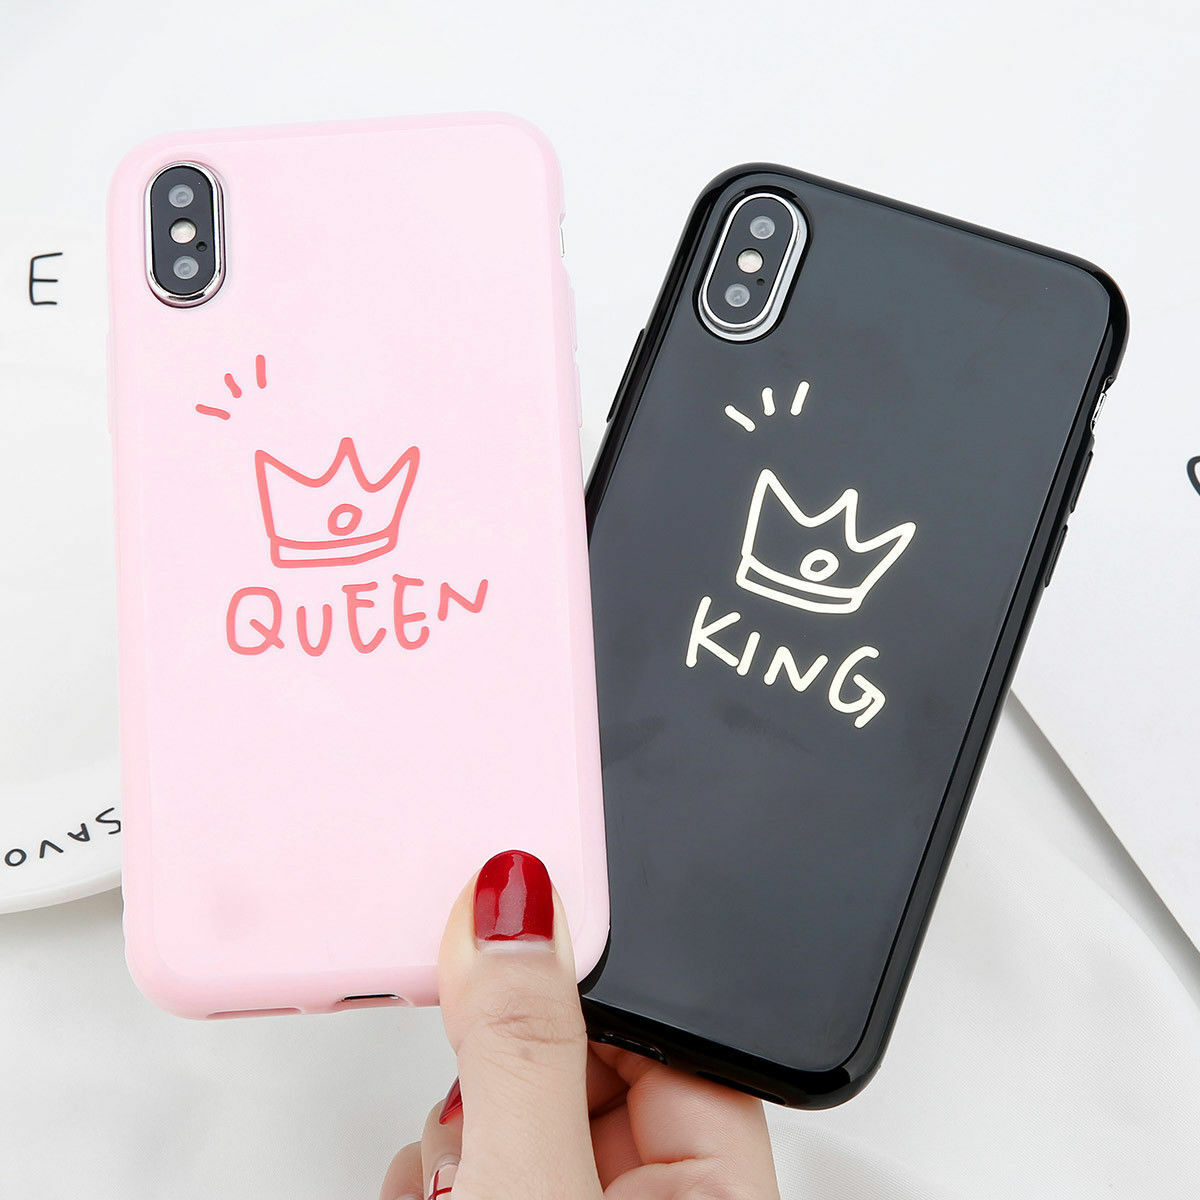 new product b6c65 76a65 Details about For iPhone X 8 6s 7 Plus Cute Couple Ultra Slim Soft Rubber  TPU Back Case Cover